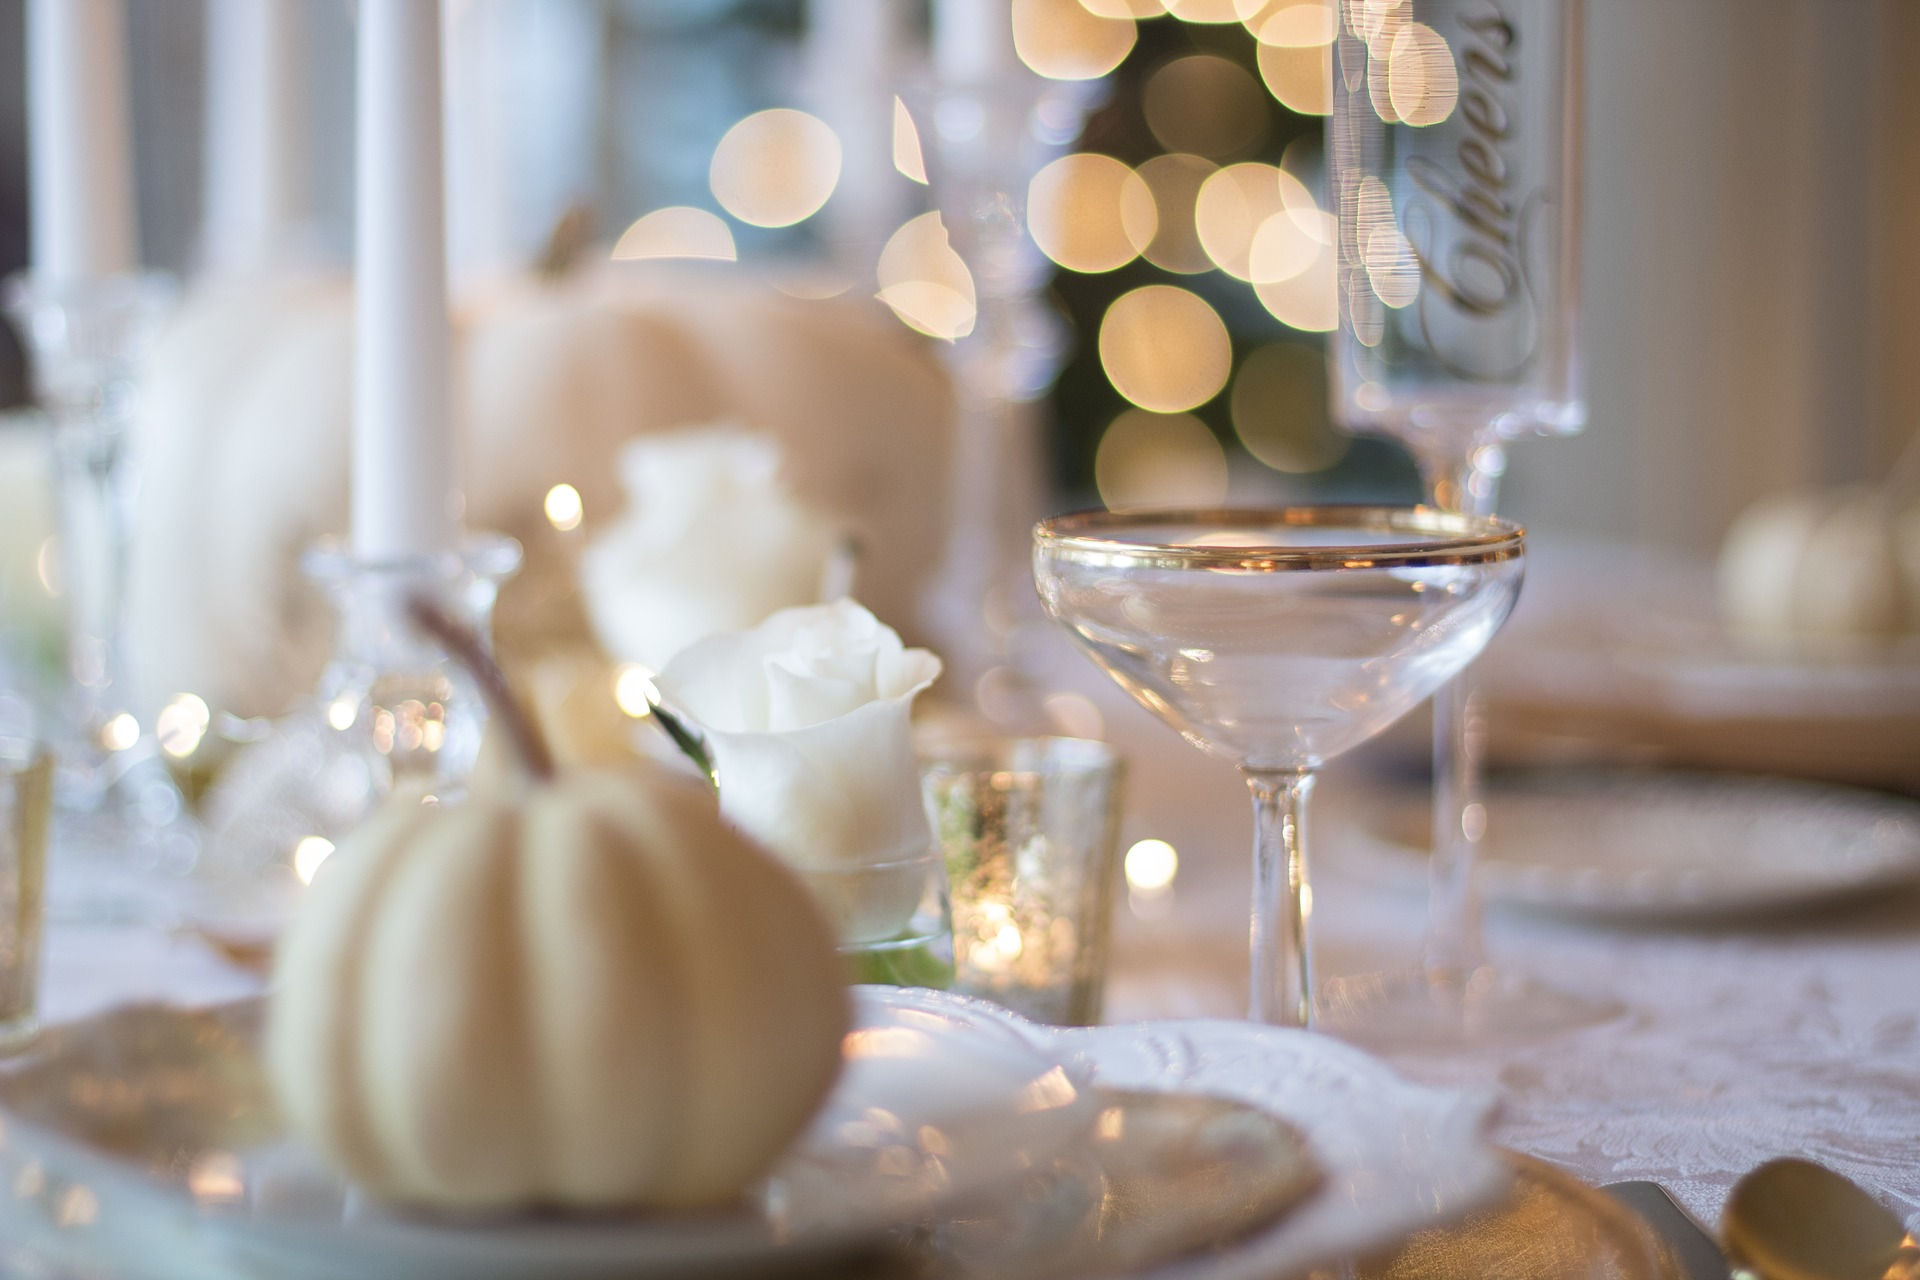 holiday-table-1926946_1920.jpg